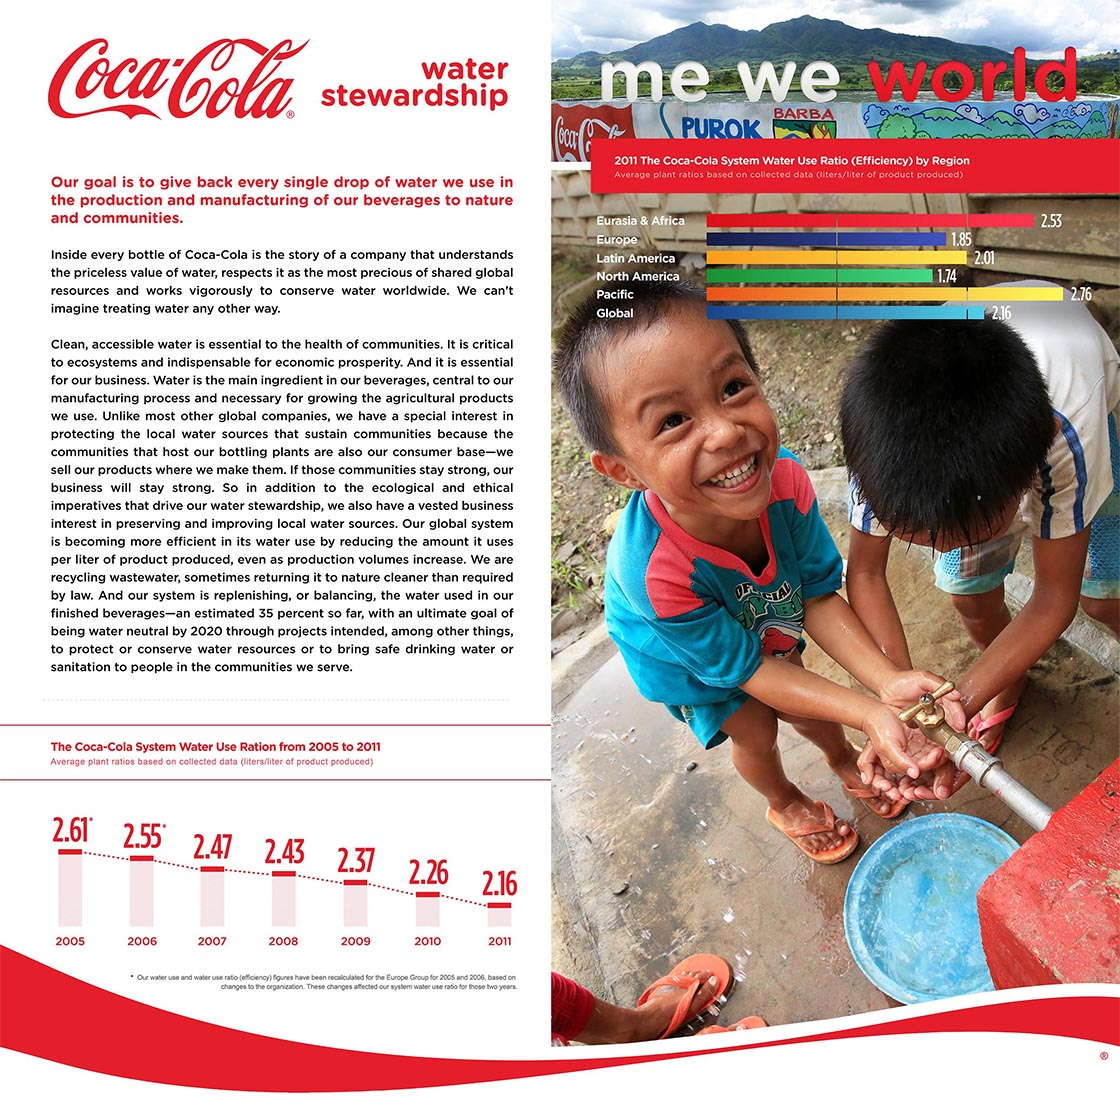 Coca-Cola Water Stewardship